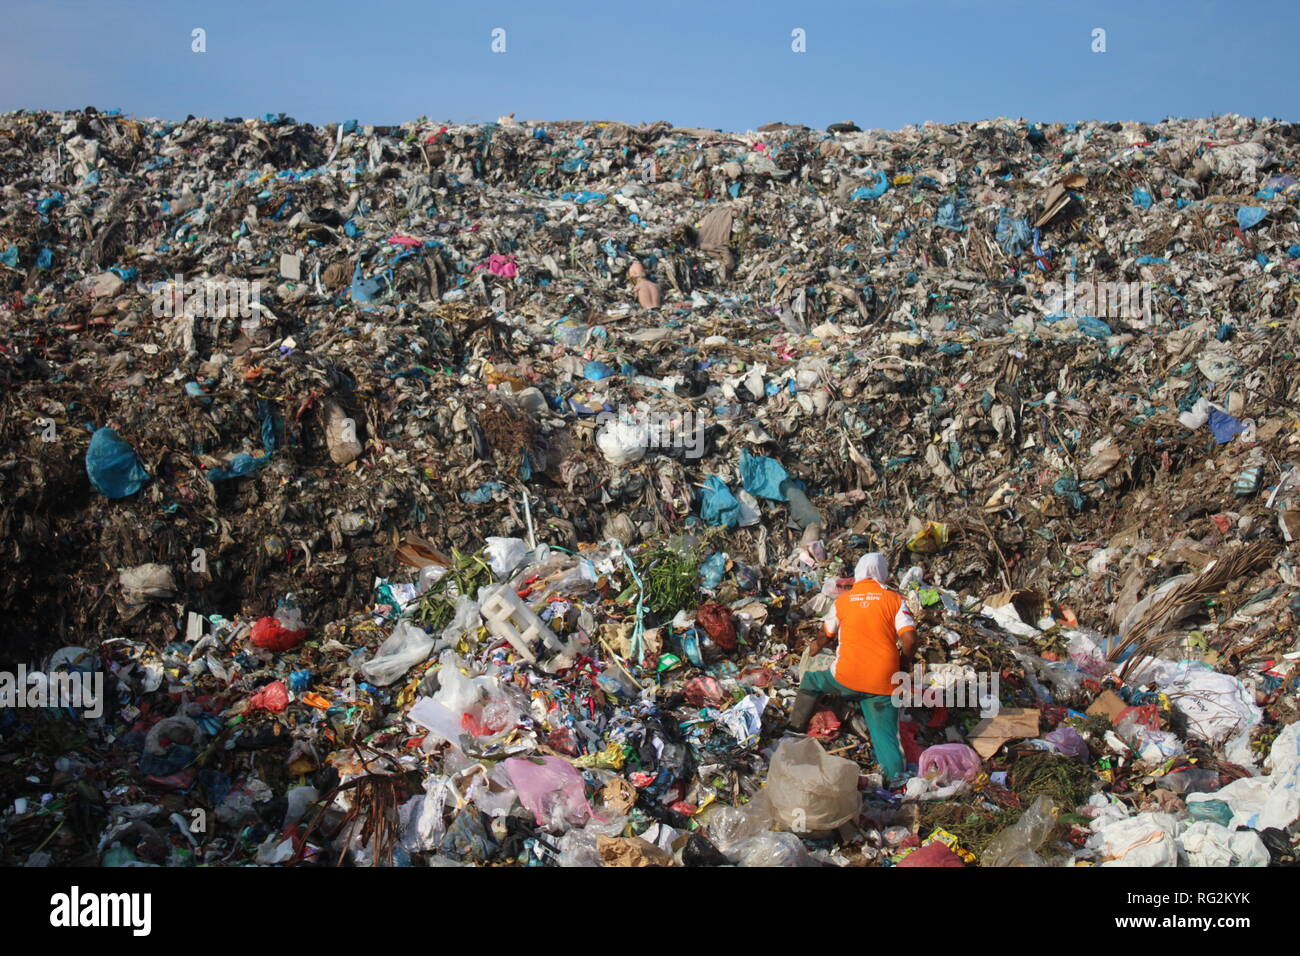 Banda Aceh Indonesia 26th Jan 2019 The State Of The Last Garbage Dump In Banda The Indonesian Minister Of Maritime Affairs And Fisheries Susi Pudjiastuti Said Indonesia Was The Second Largest Country